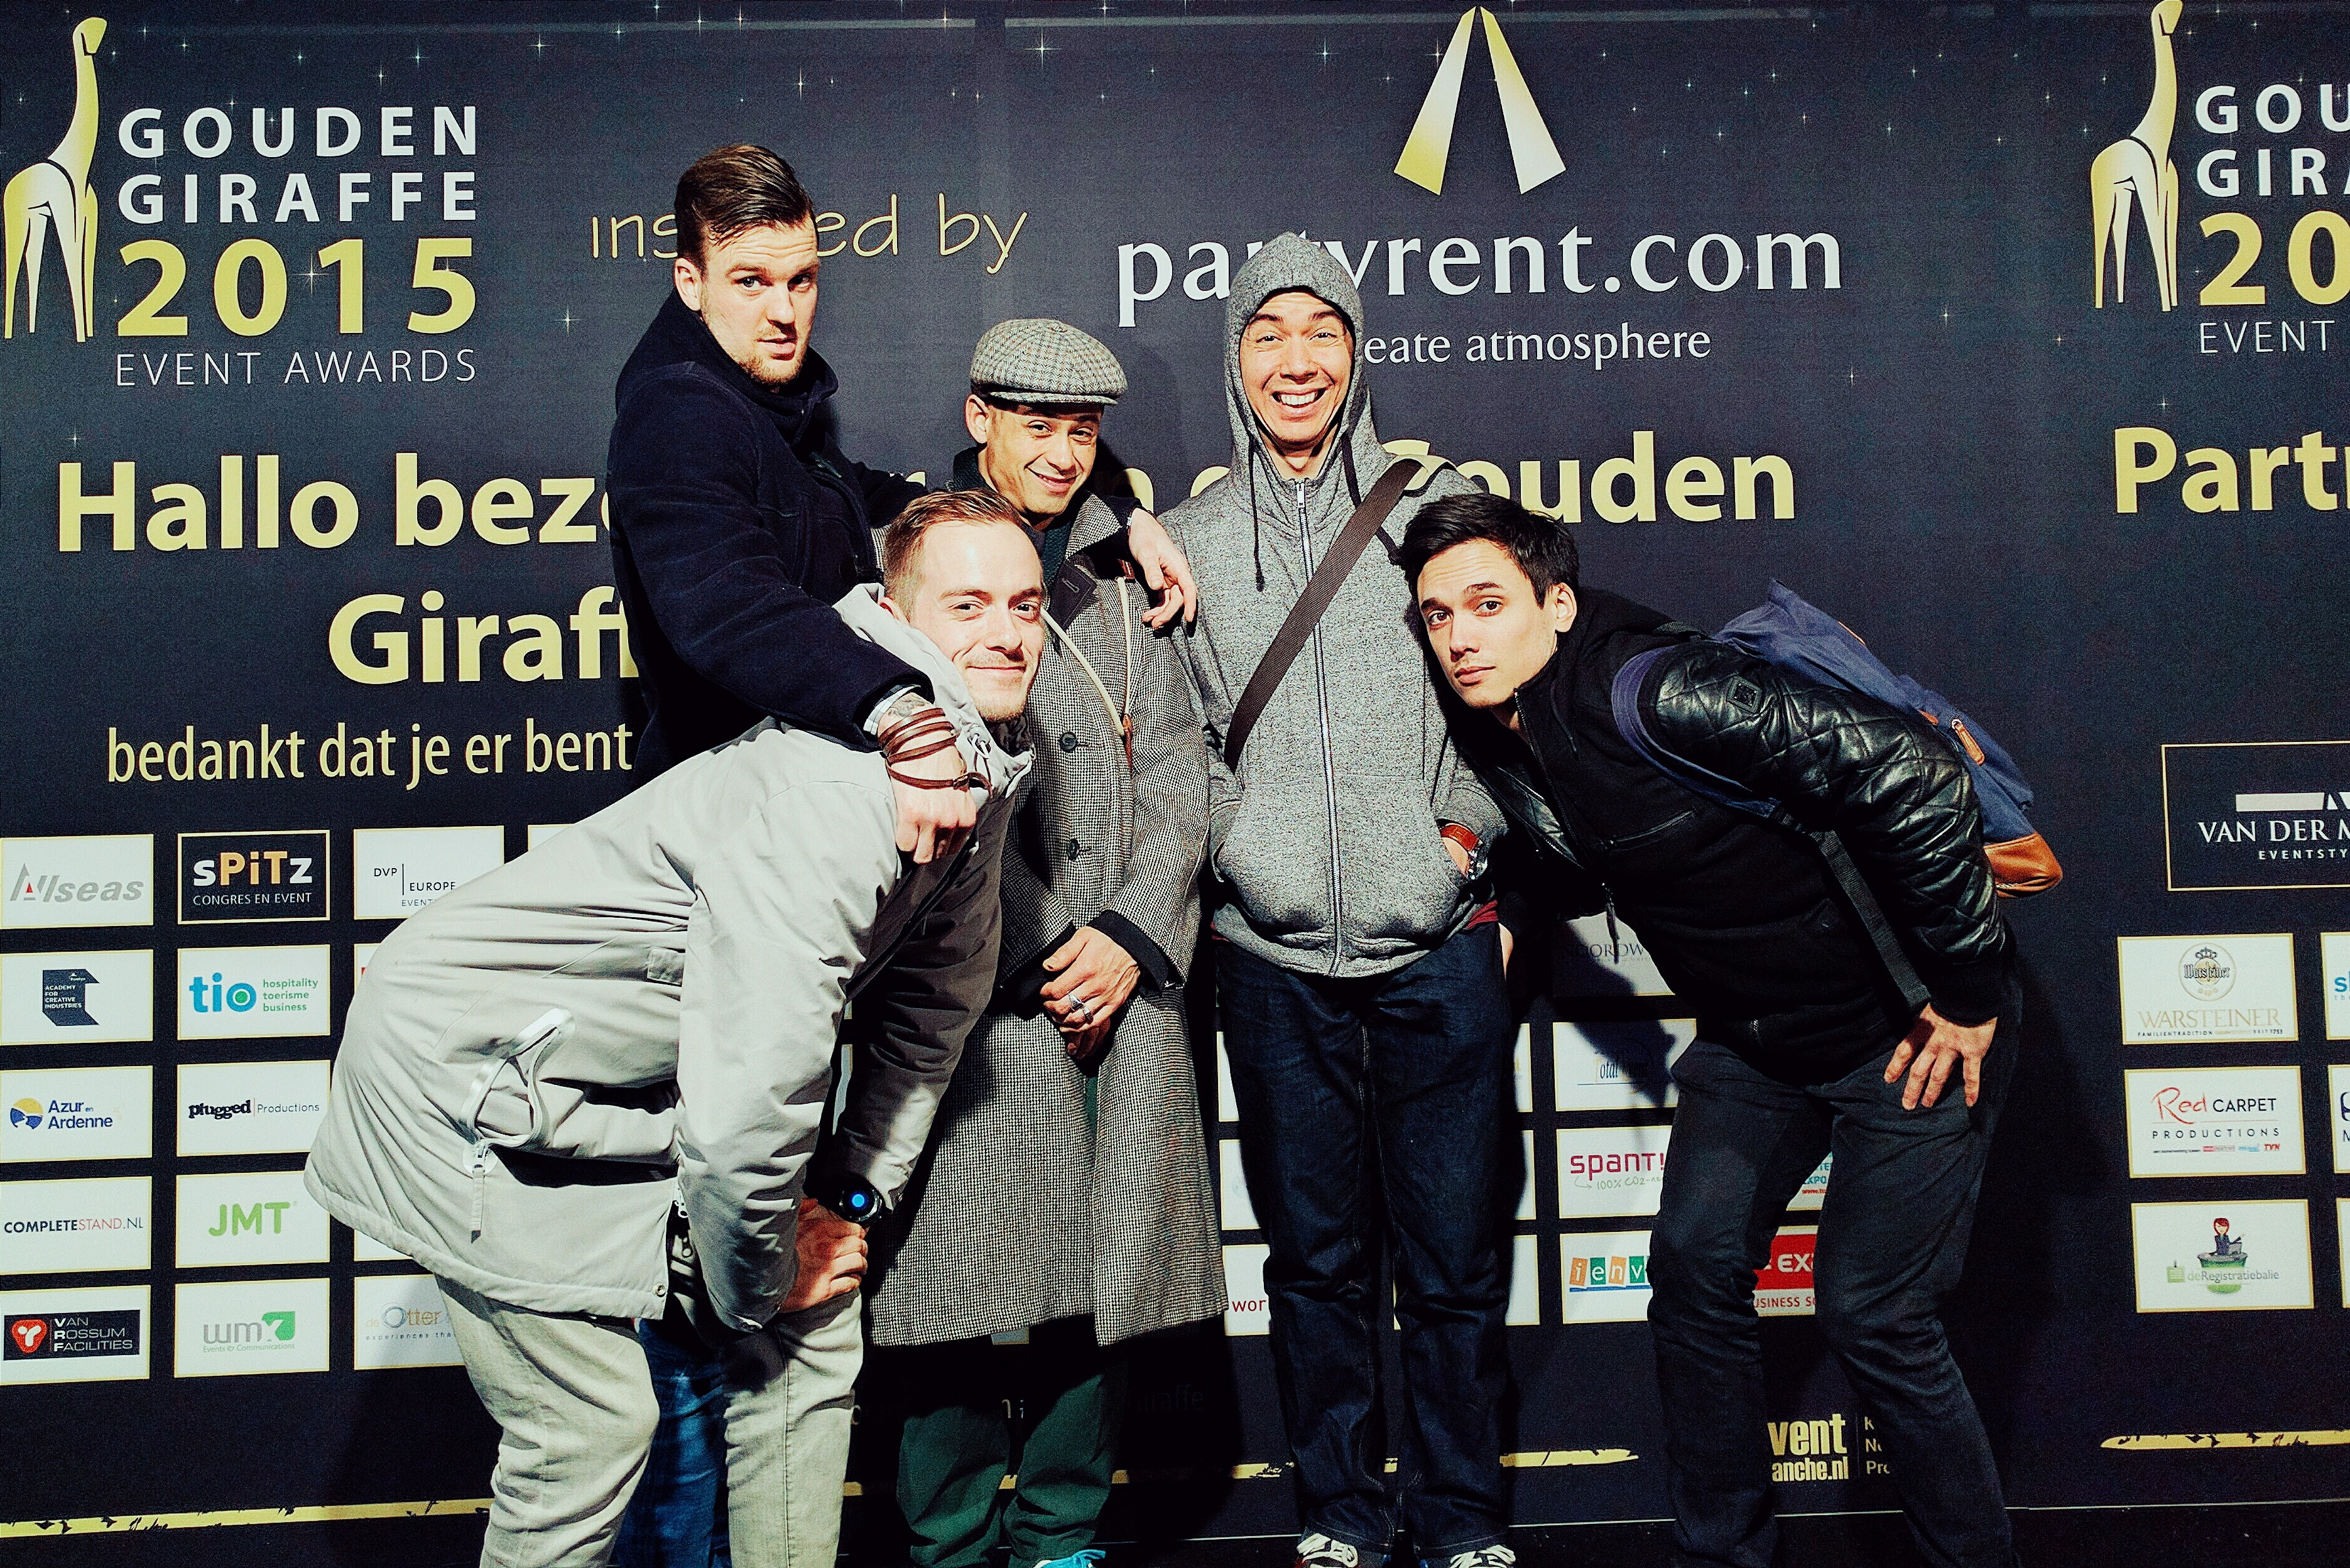 Come correct gouden giraffe event awards 2